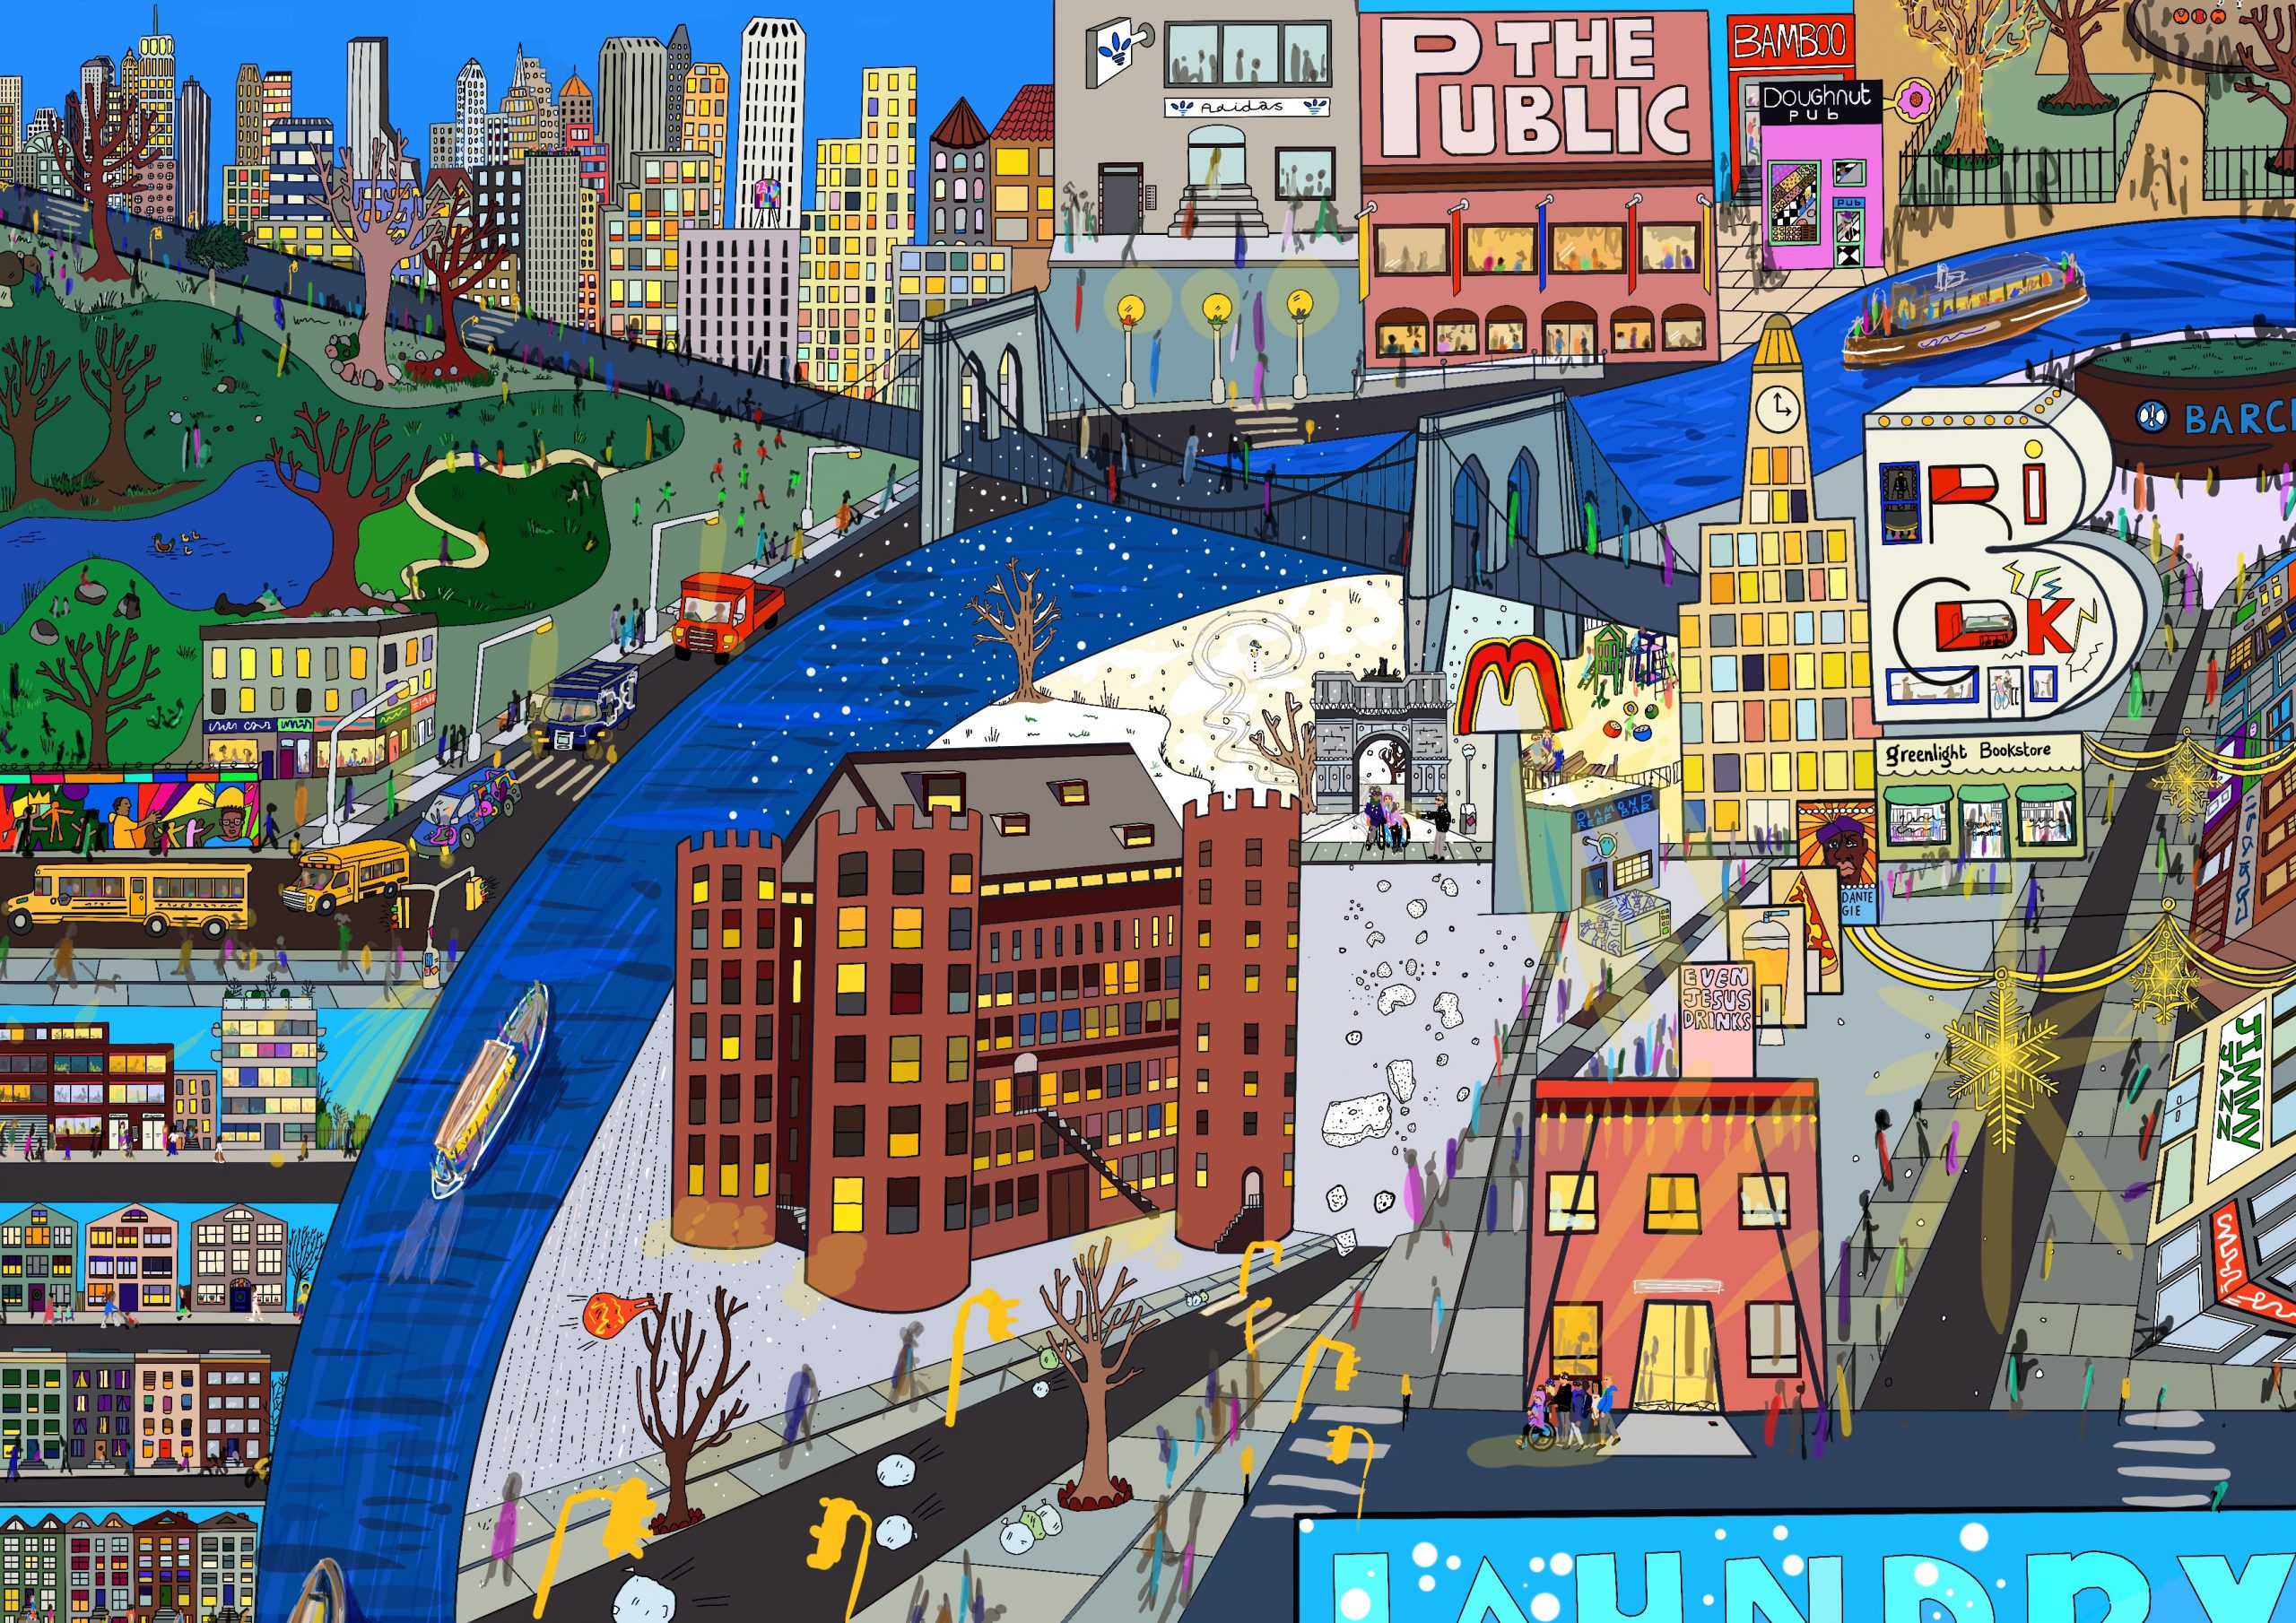 An incredibly colourful and detailed image of Brooklyn and Manhattan by Touretteshero. Bric Arts Centre, The Public Theater, The Brooklyn Bridge, the Hudson River and other landmarks of New York City.